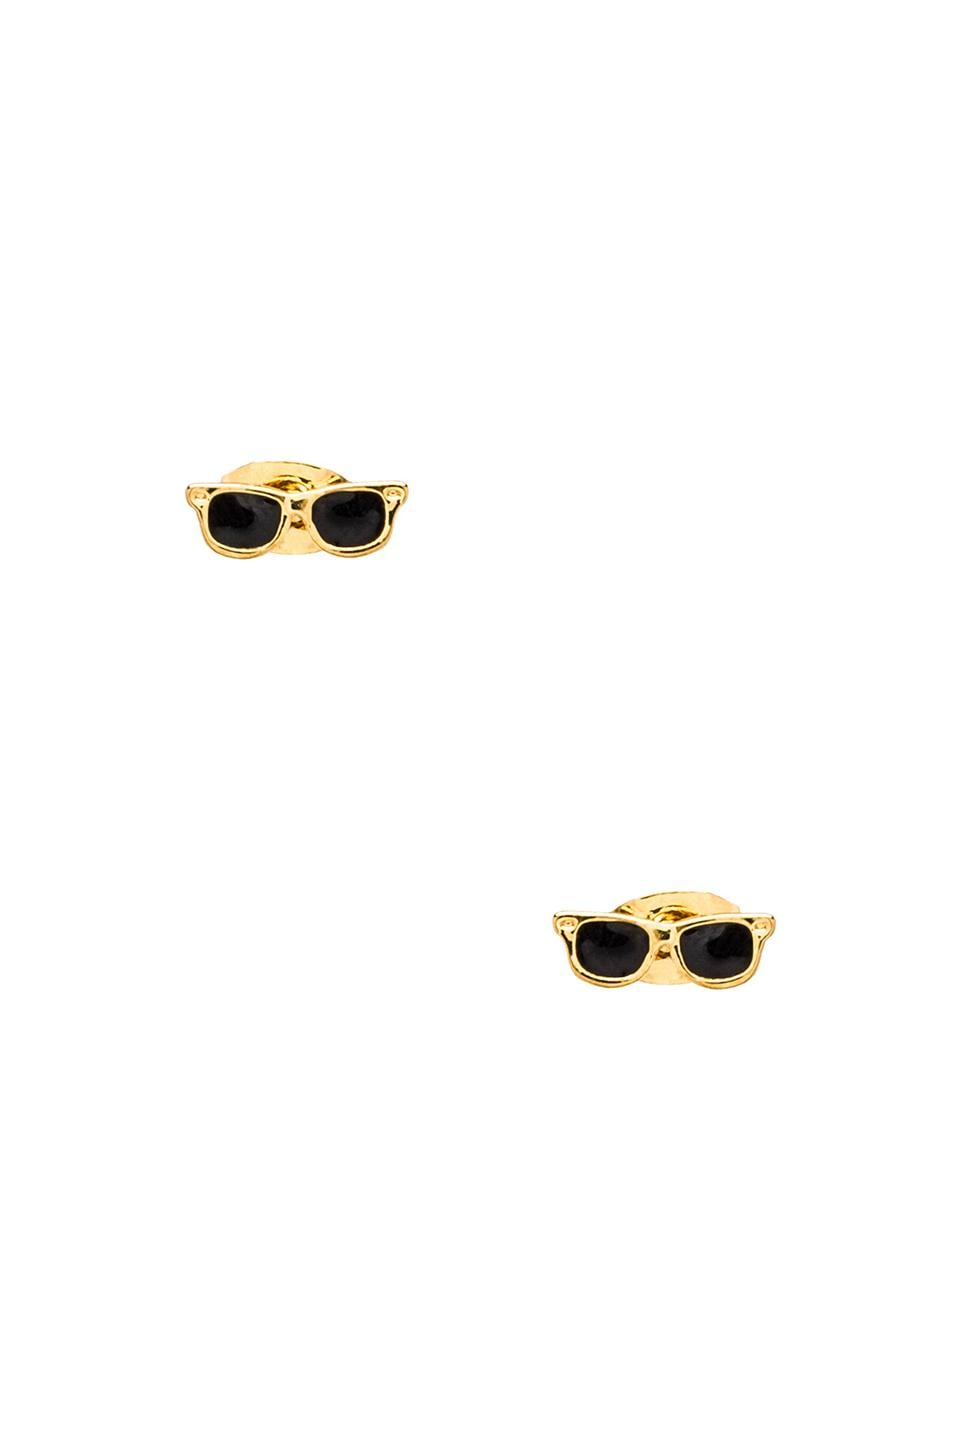 gorjana Sunglass Studs in Gold